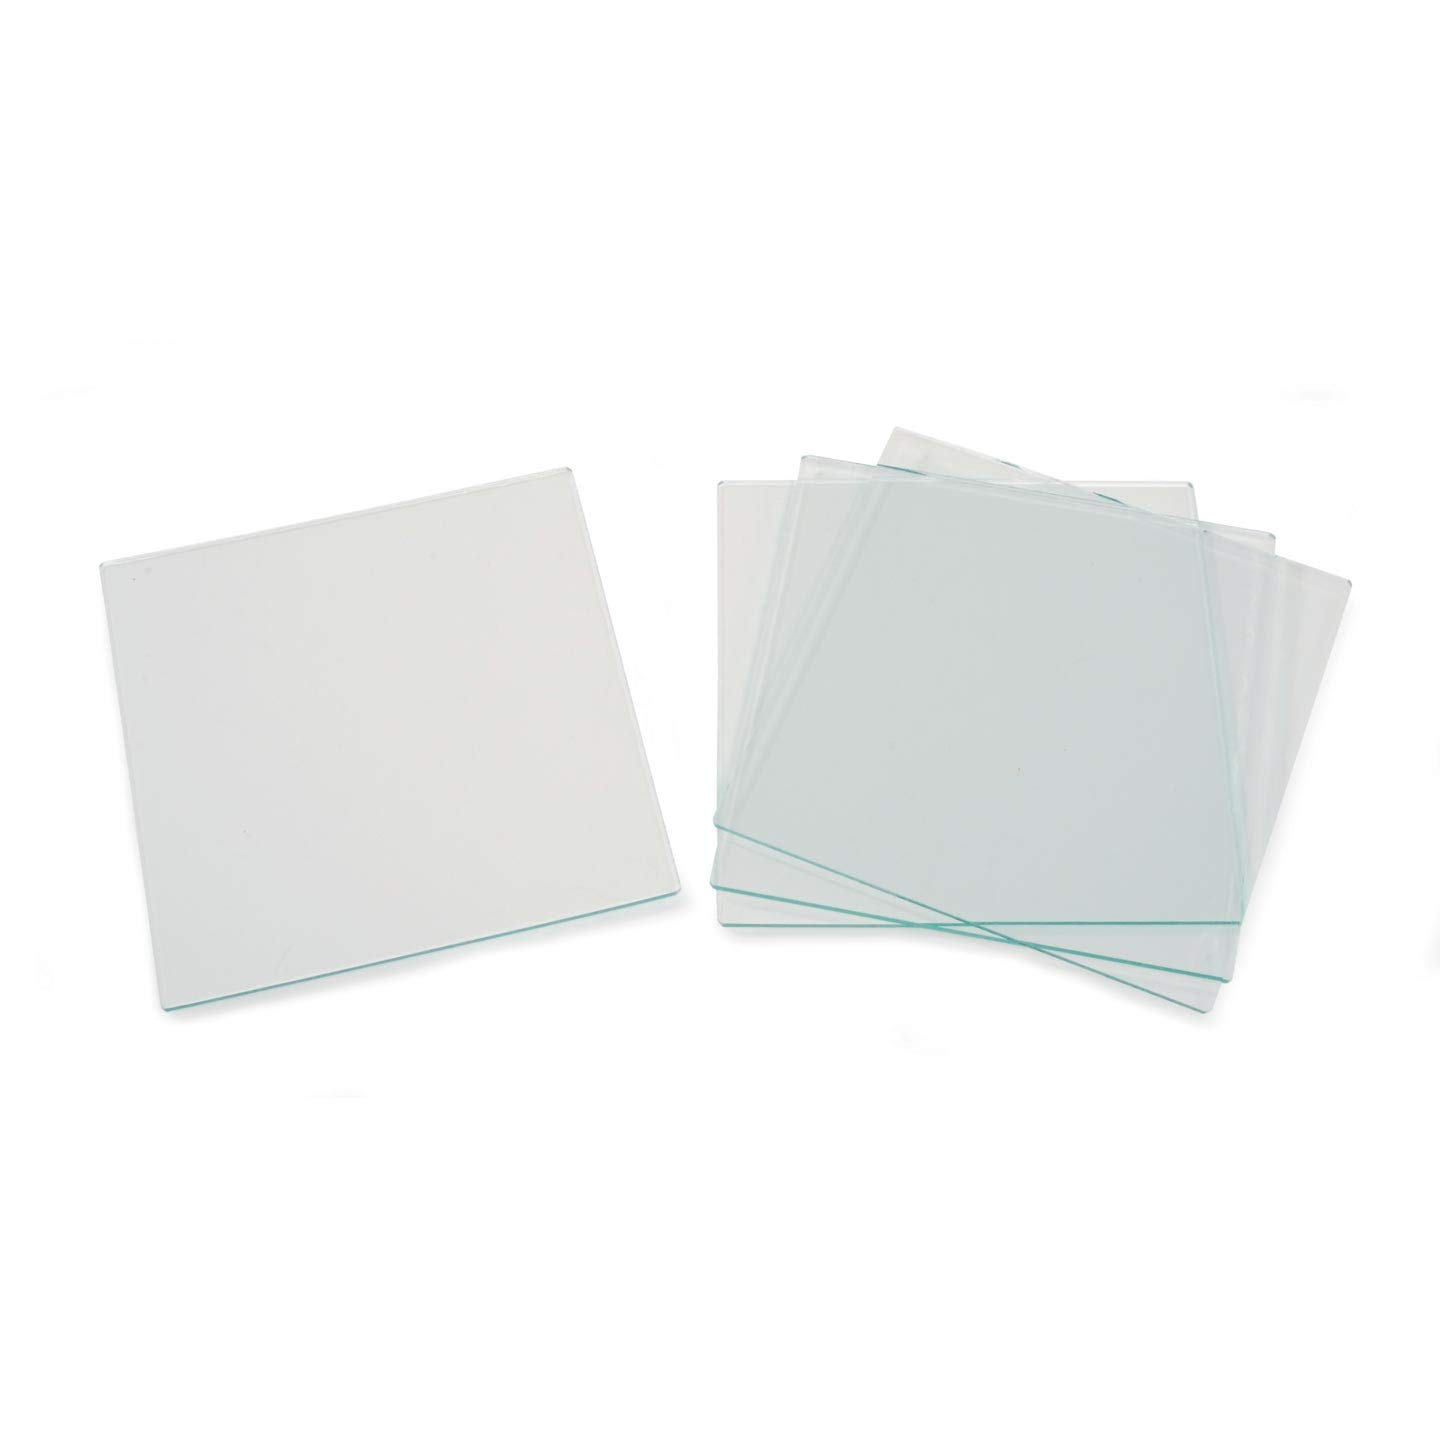 Bulk Buy: Darice DIY Crafts Glass Tile Square 4 x 4 inches 4 pieces (6-Pack) 1098-80 Inc.